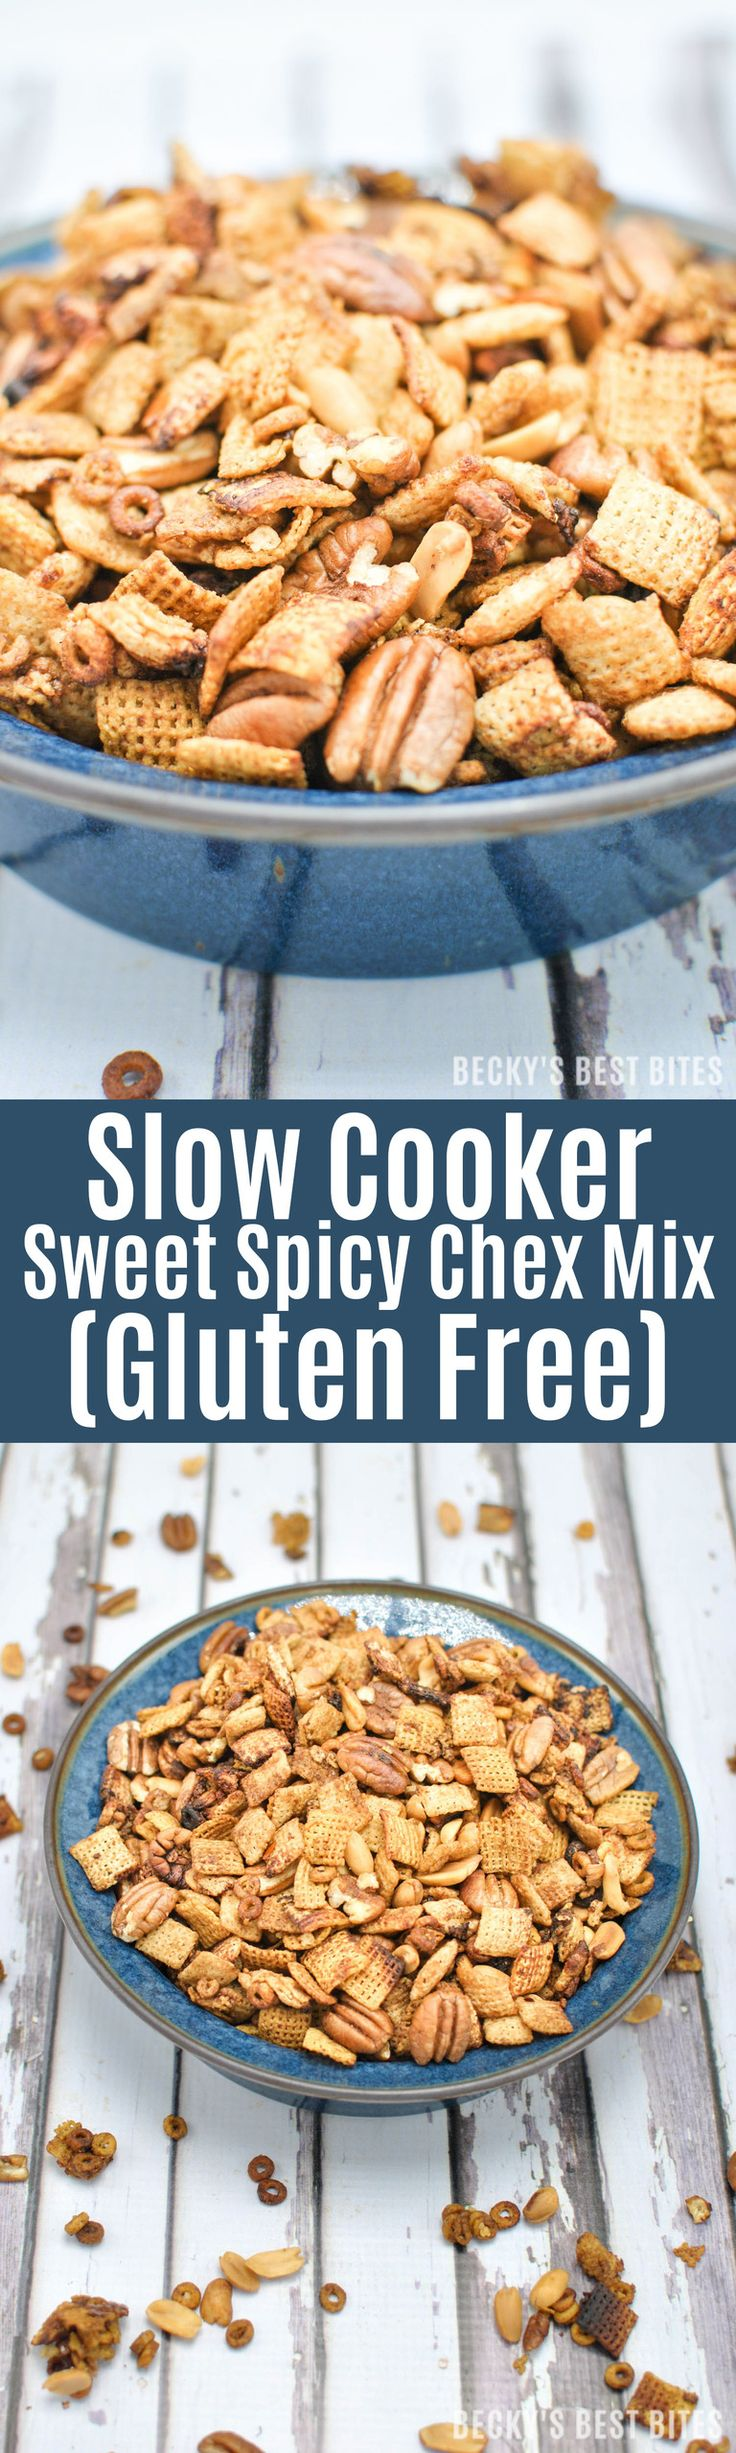 Easy chex mix recipes gluten free